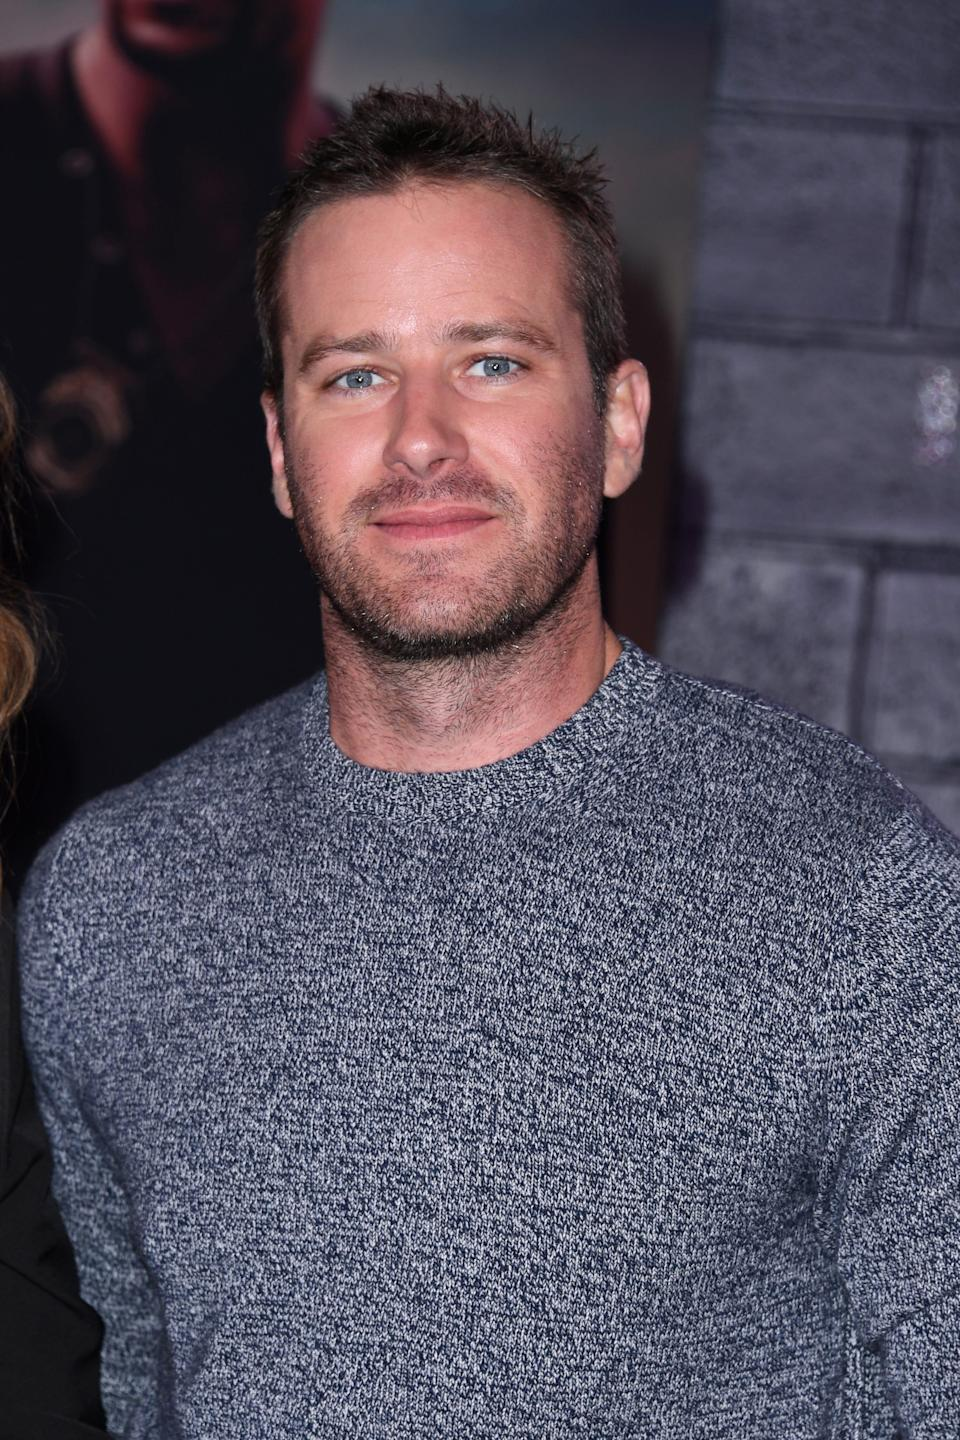 """Armie Hammer was originally slated to star in """"Shotgun Wedding,"""" but confirmed his exit fromthe film after controversial Instagram messages he allegedly sentdetailing sexual fantasies went viral."""